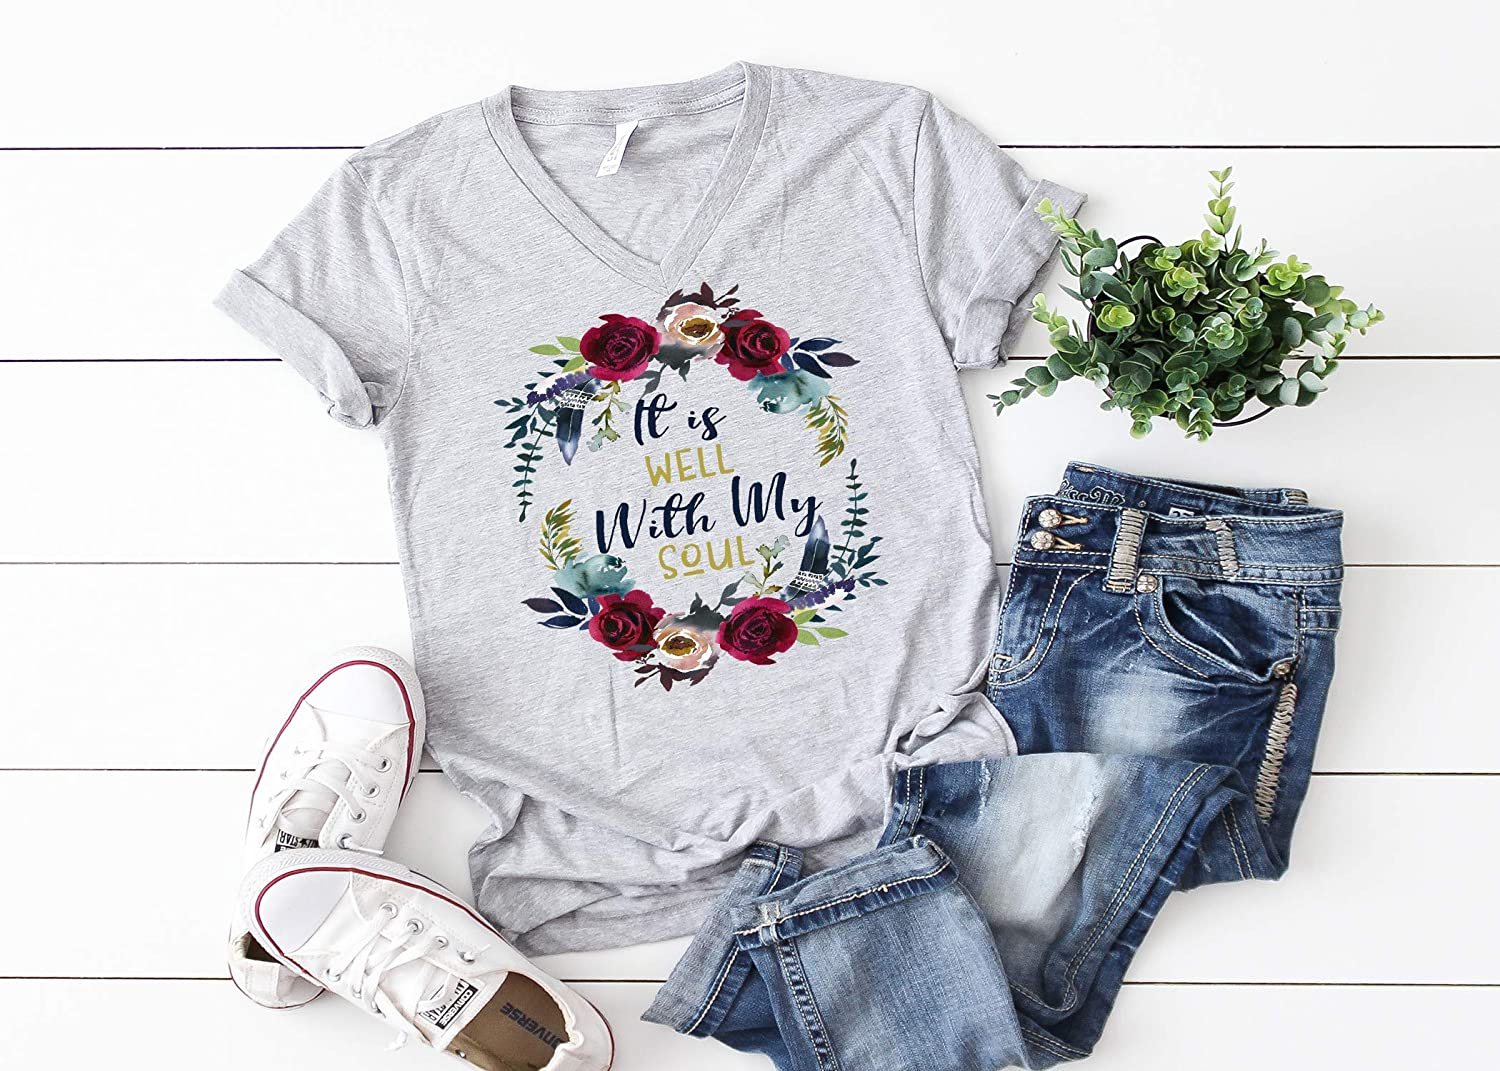 It Is Well With My Soul Women/'s T shirts Womens Tees Ladies T Shirt Womens Shirts Mom Shirts Mom Gift Mothers Day Shirts Shirts for Mom